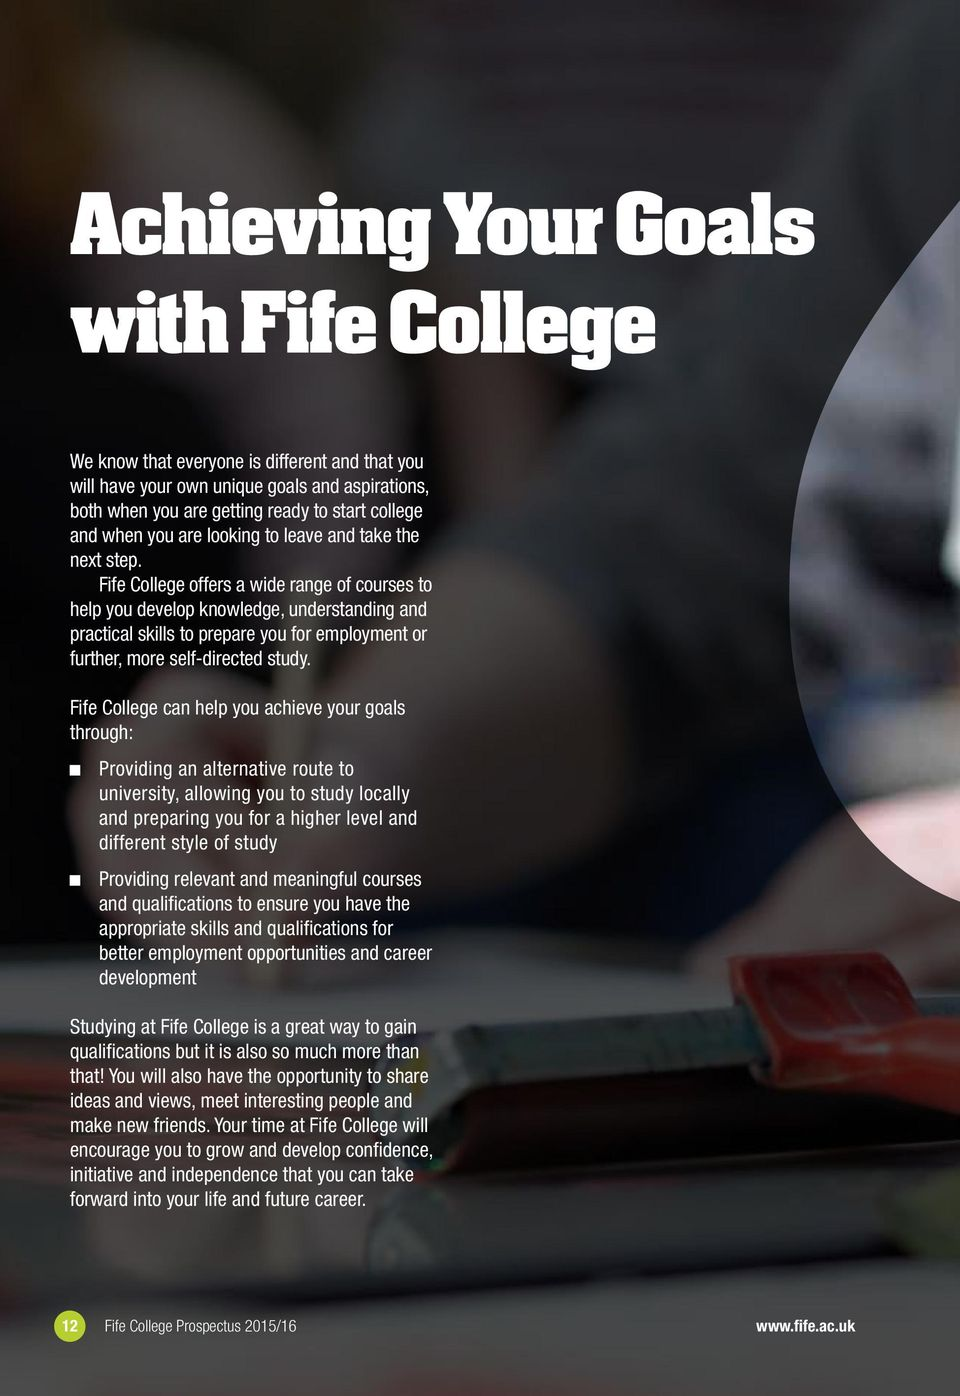 Fife College offers a wide range of courses to help you develop knowledge, understanding and practical skills to prepare you for employment or further, more self-directed study.